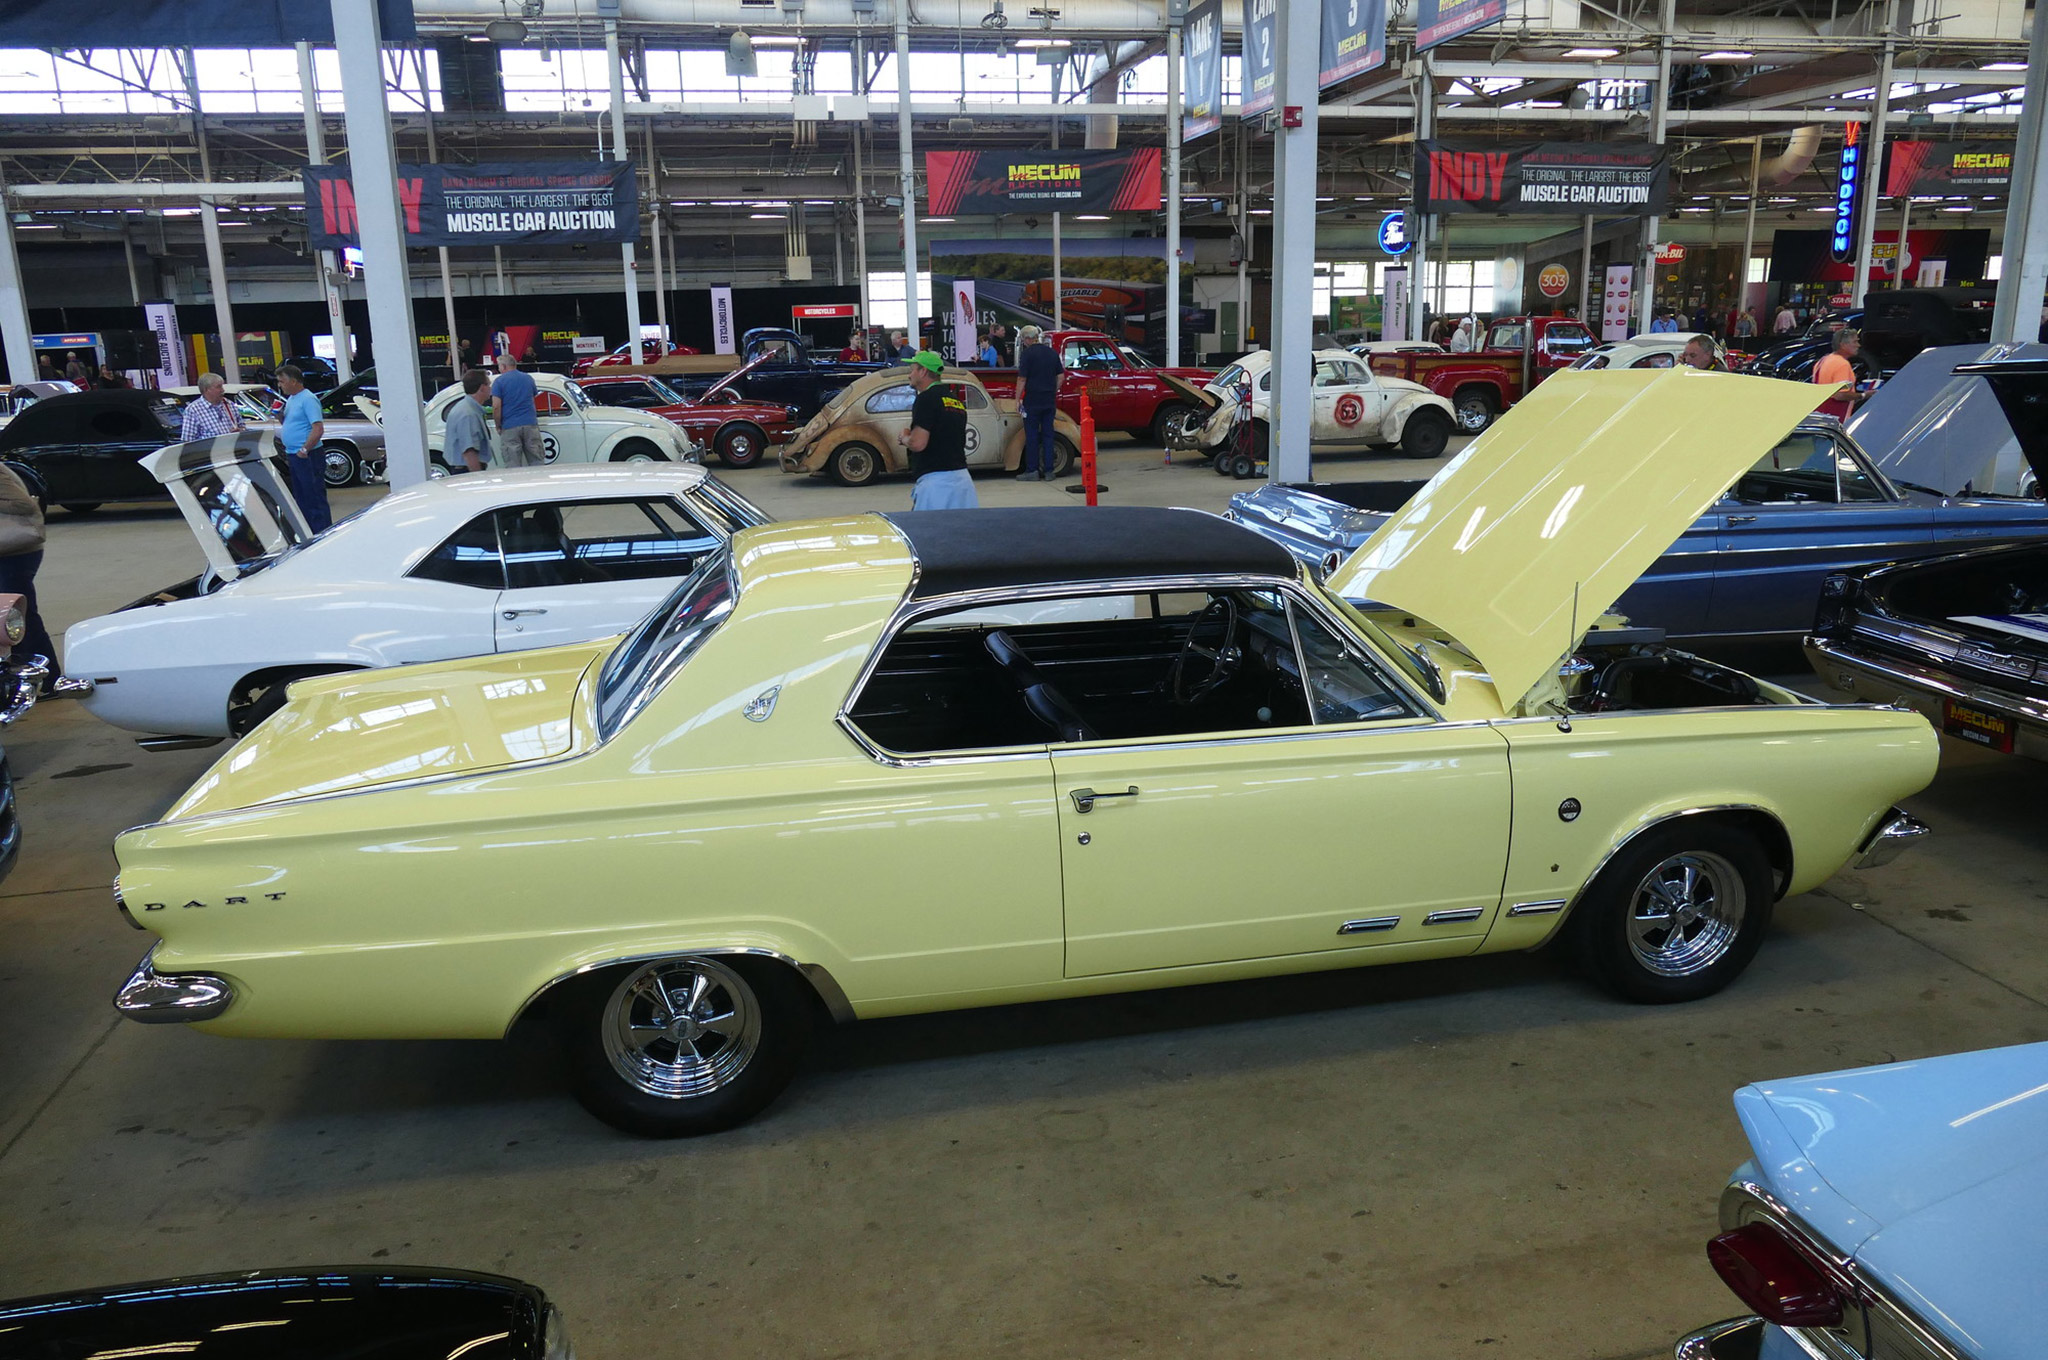 Thursday's action found this rare 1965 California Dart Charger 273 on deck. With 480 built, these are not often seen, and this restored example brought $22,000.